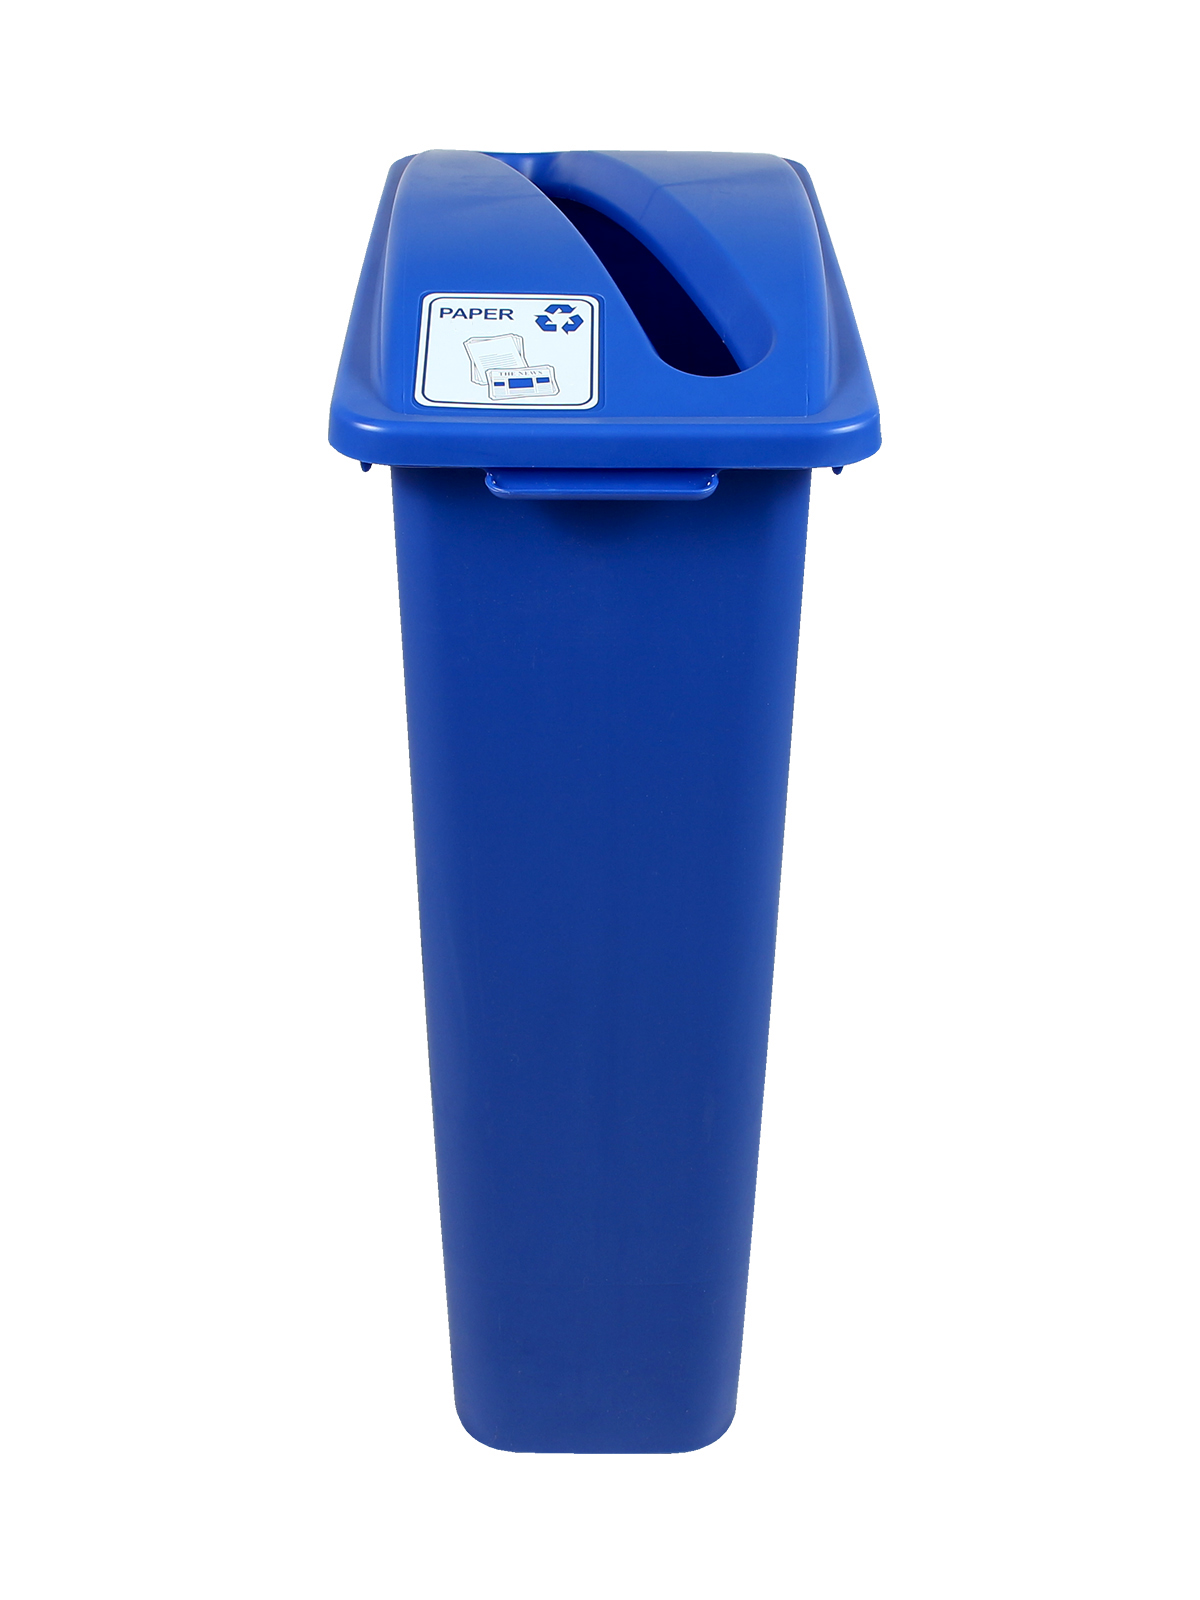 WASTE WATCHER - Single - Paper - Slot - Blue